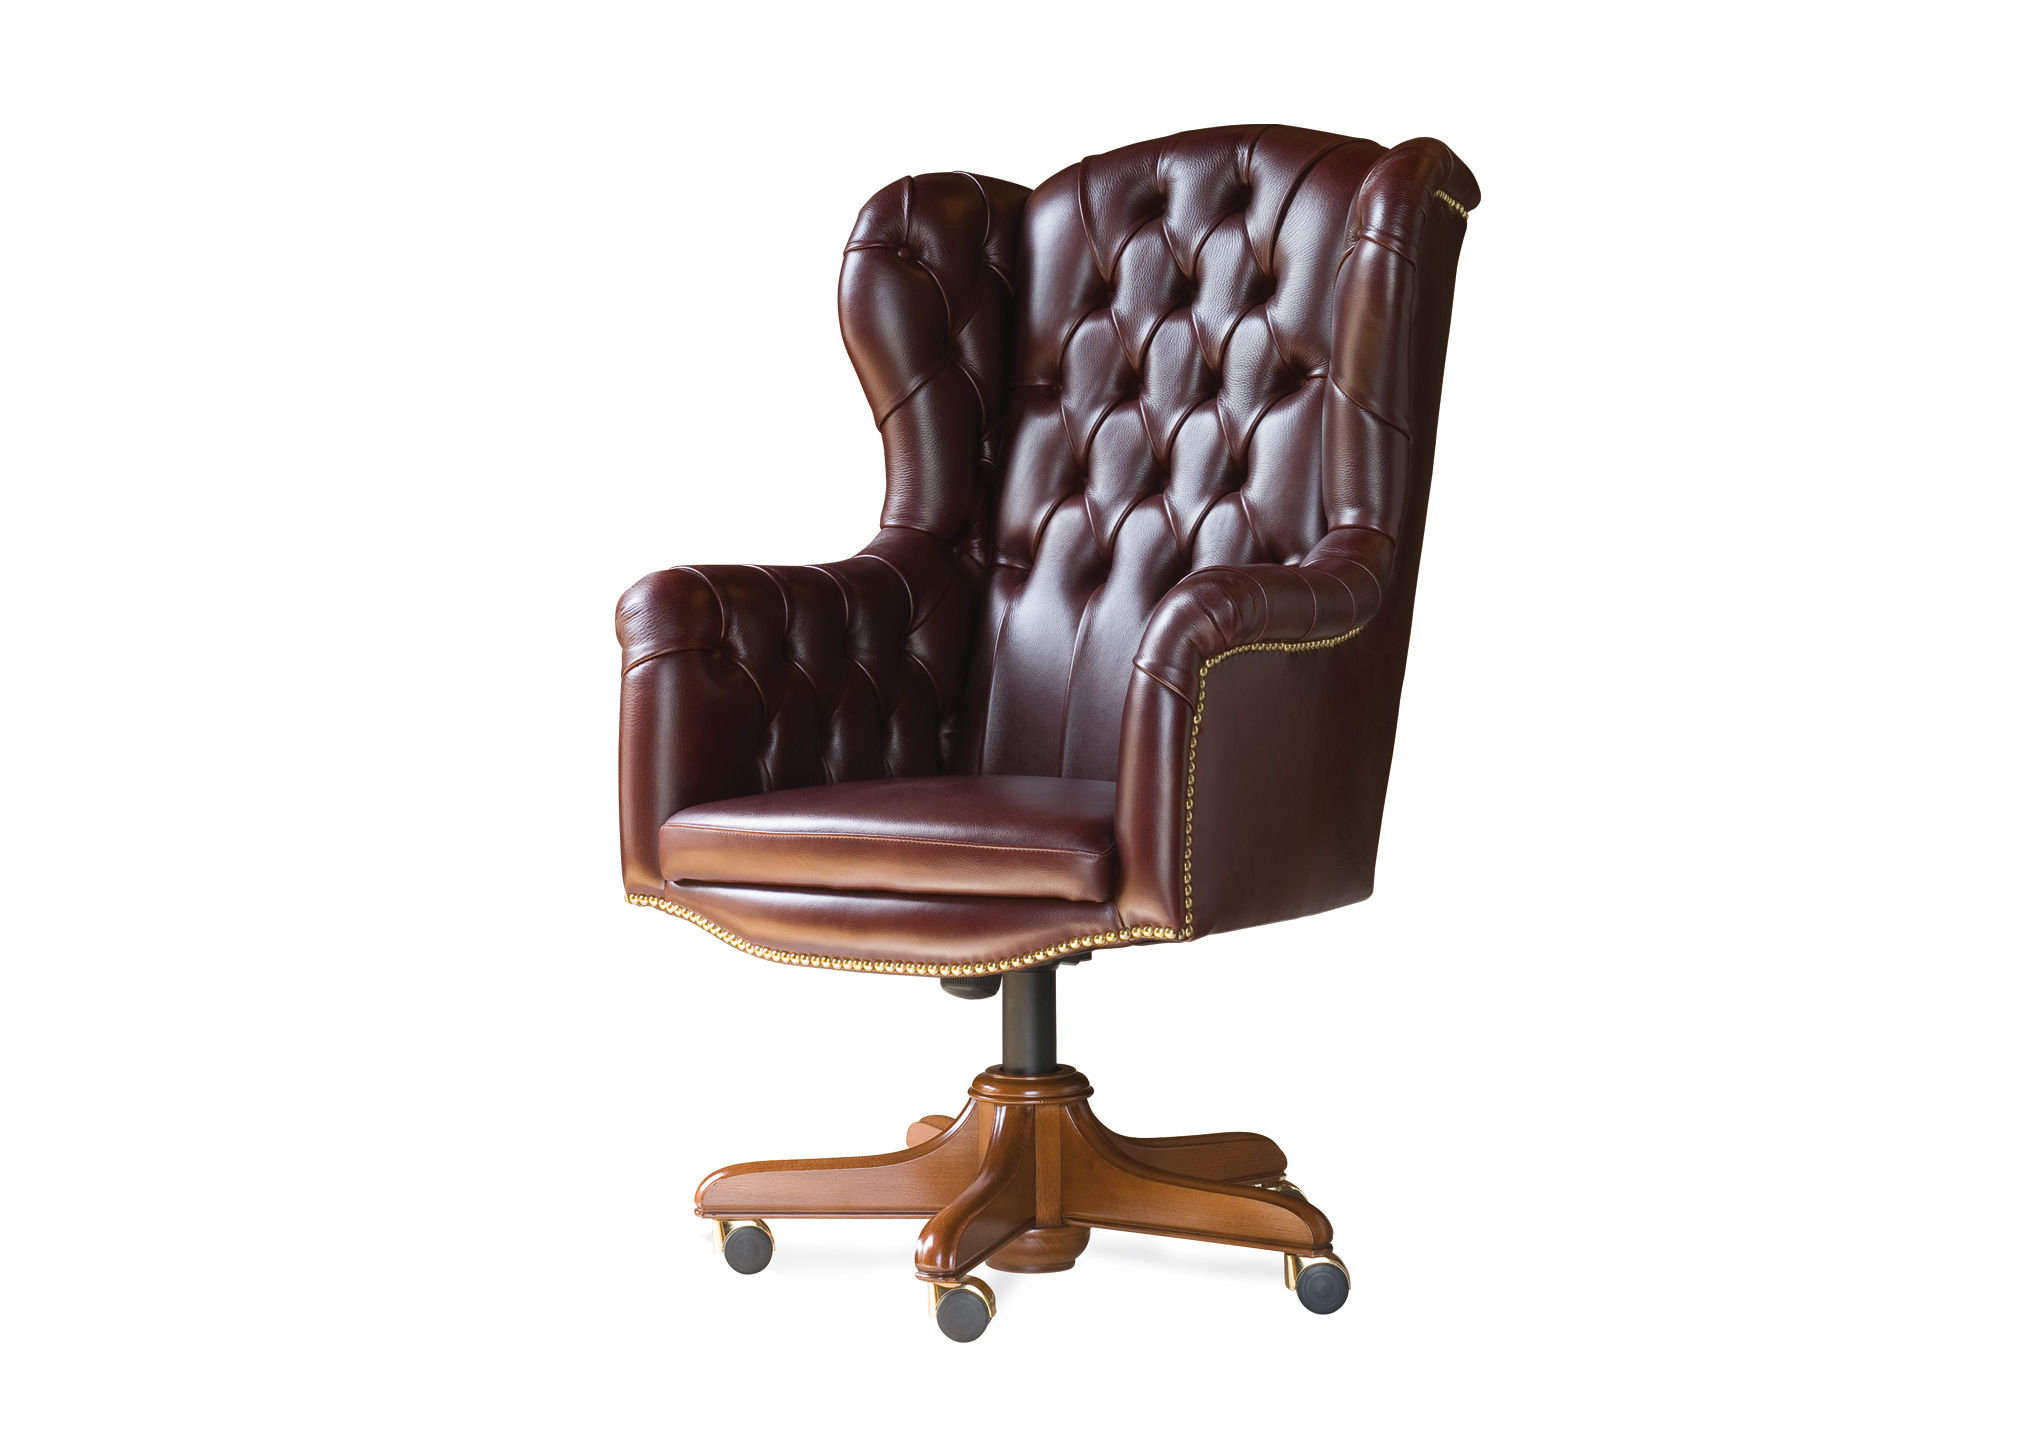 Chefsessel holz  Chesterfield-Chefsessel / Holz / Leder / mit Rollen - MANAGER ...